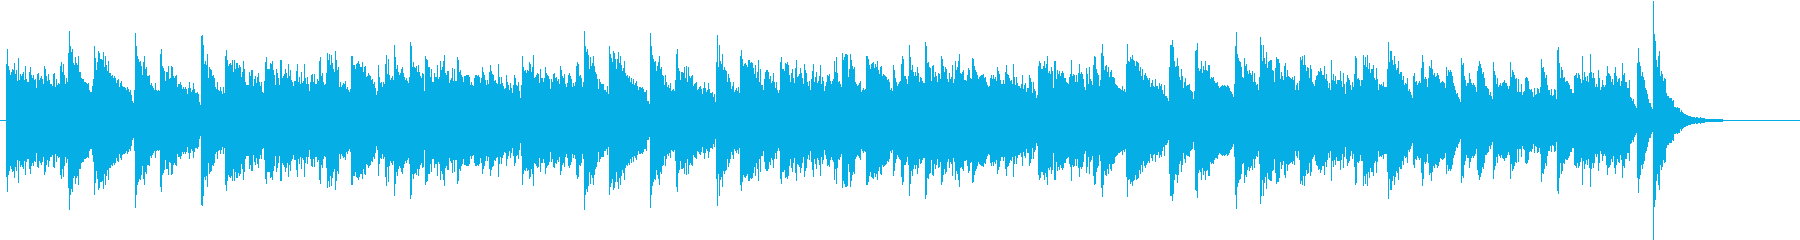 Battle of Jericho: That melody I heard somewhere's reproduced waveform